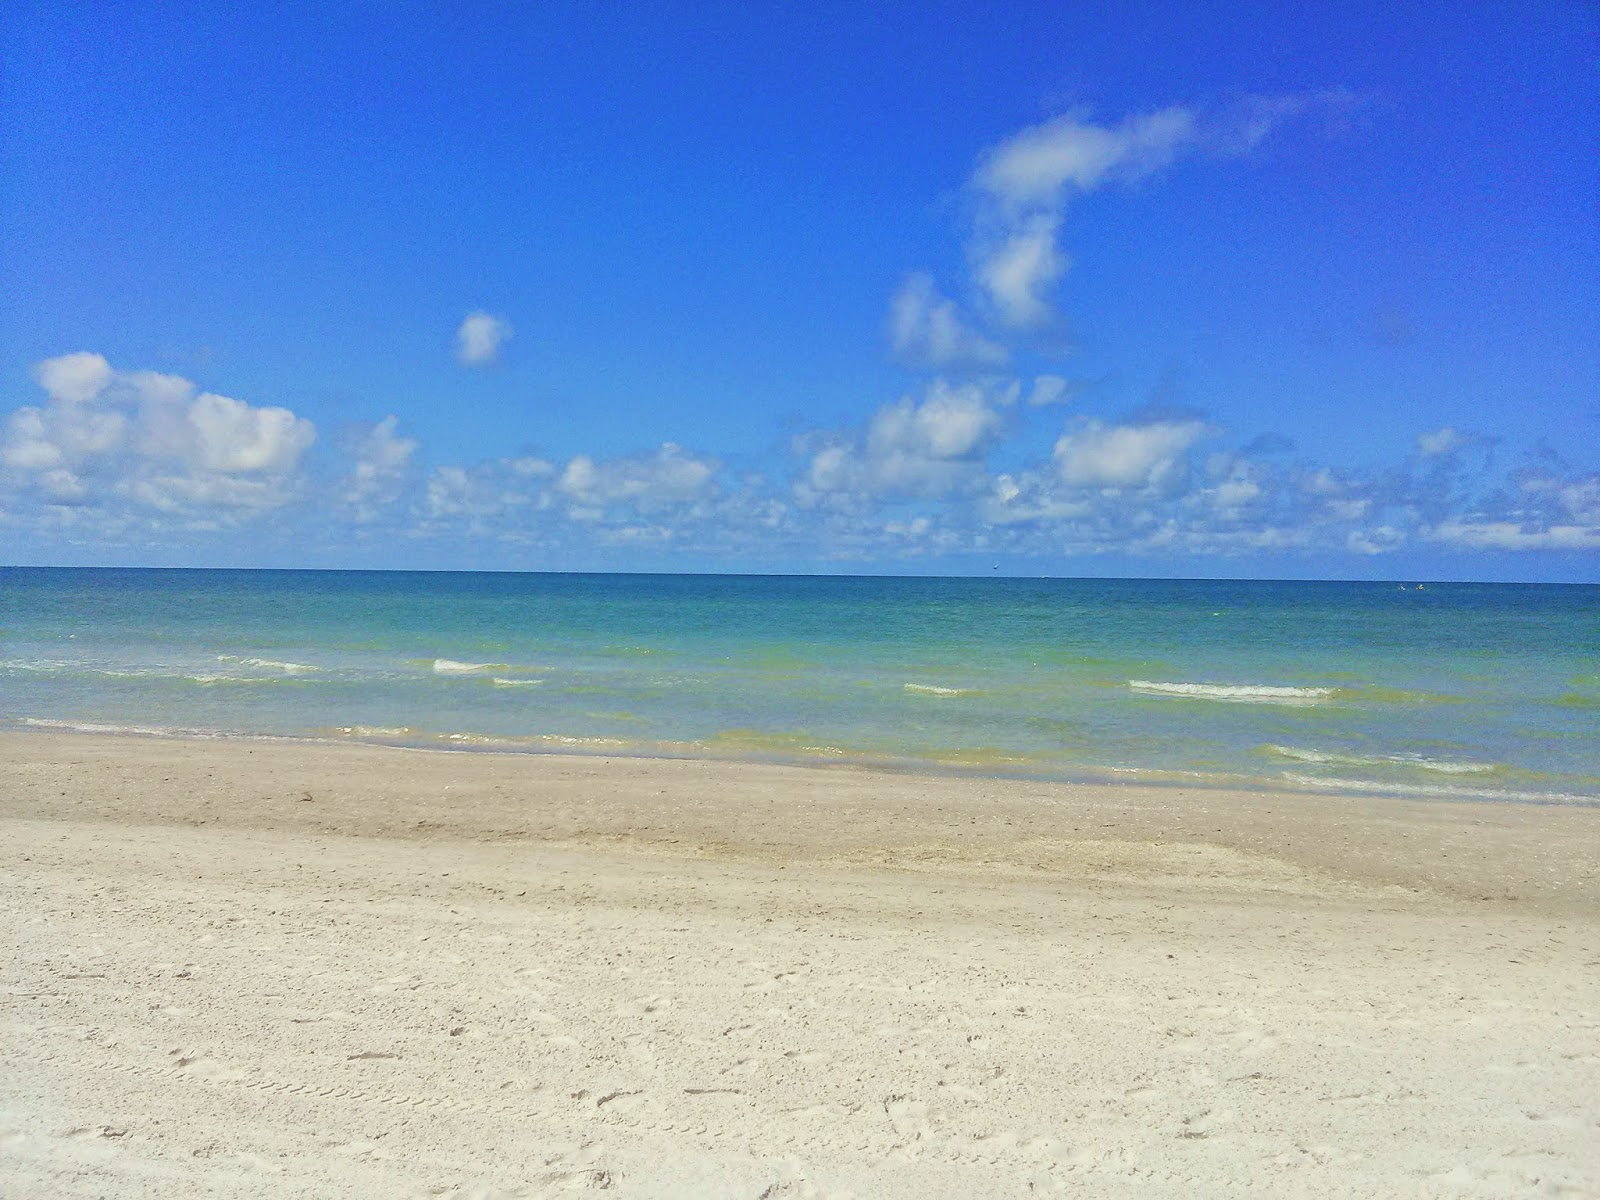 Maderia Beach, Florida April 2014